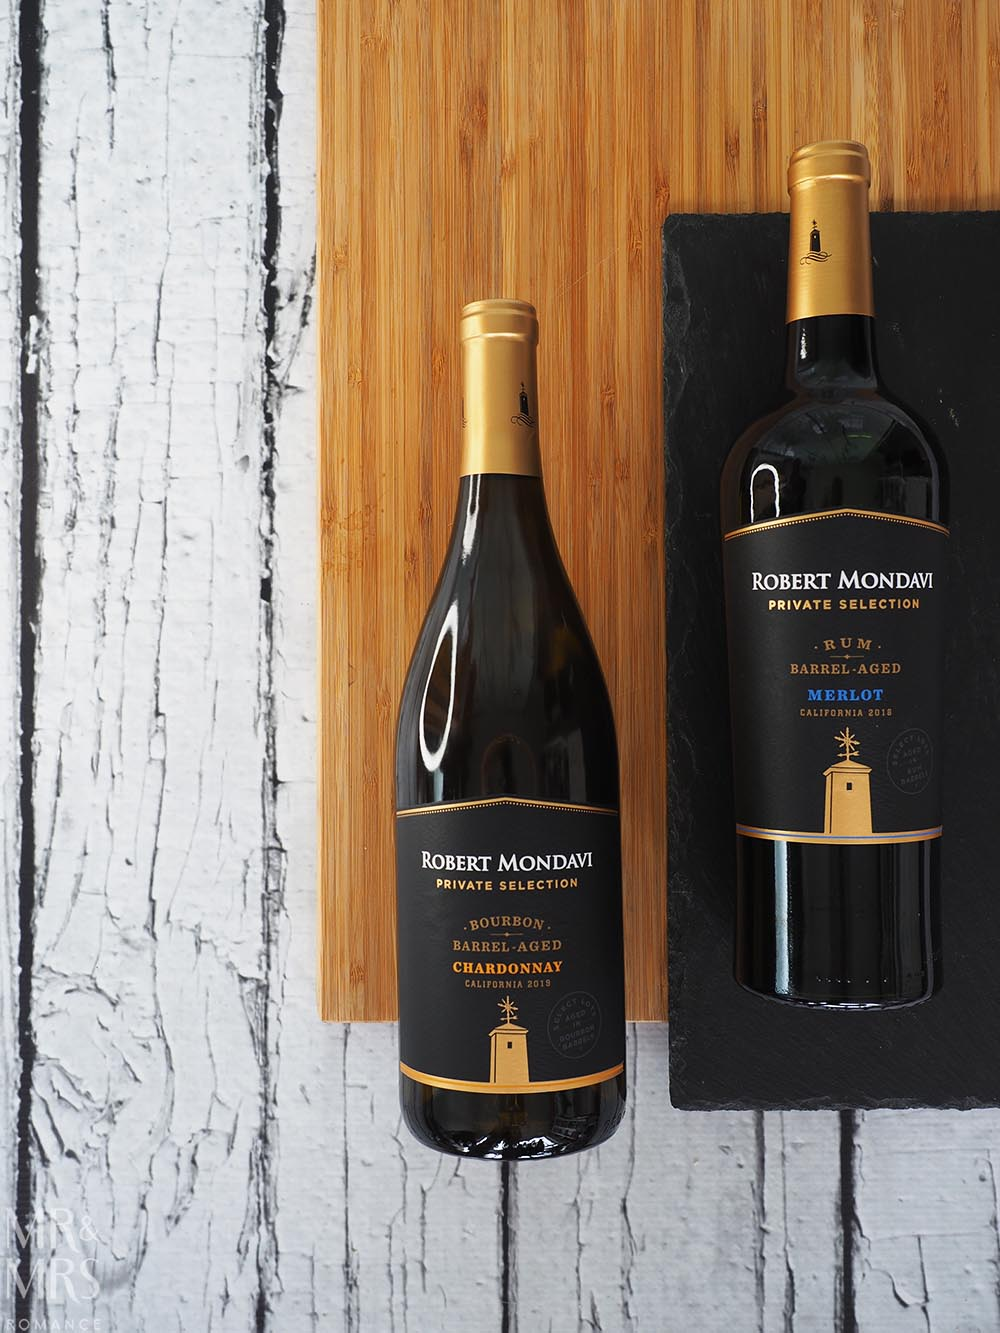 Wine discoveries - Robert Mondavi Private Selection